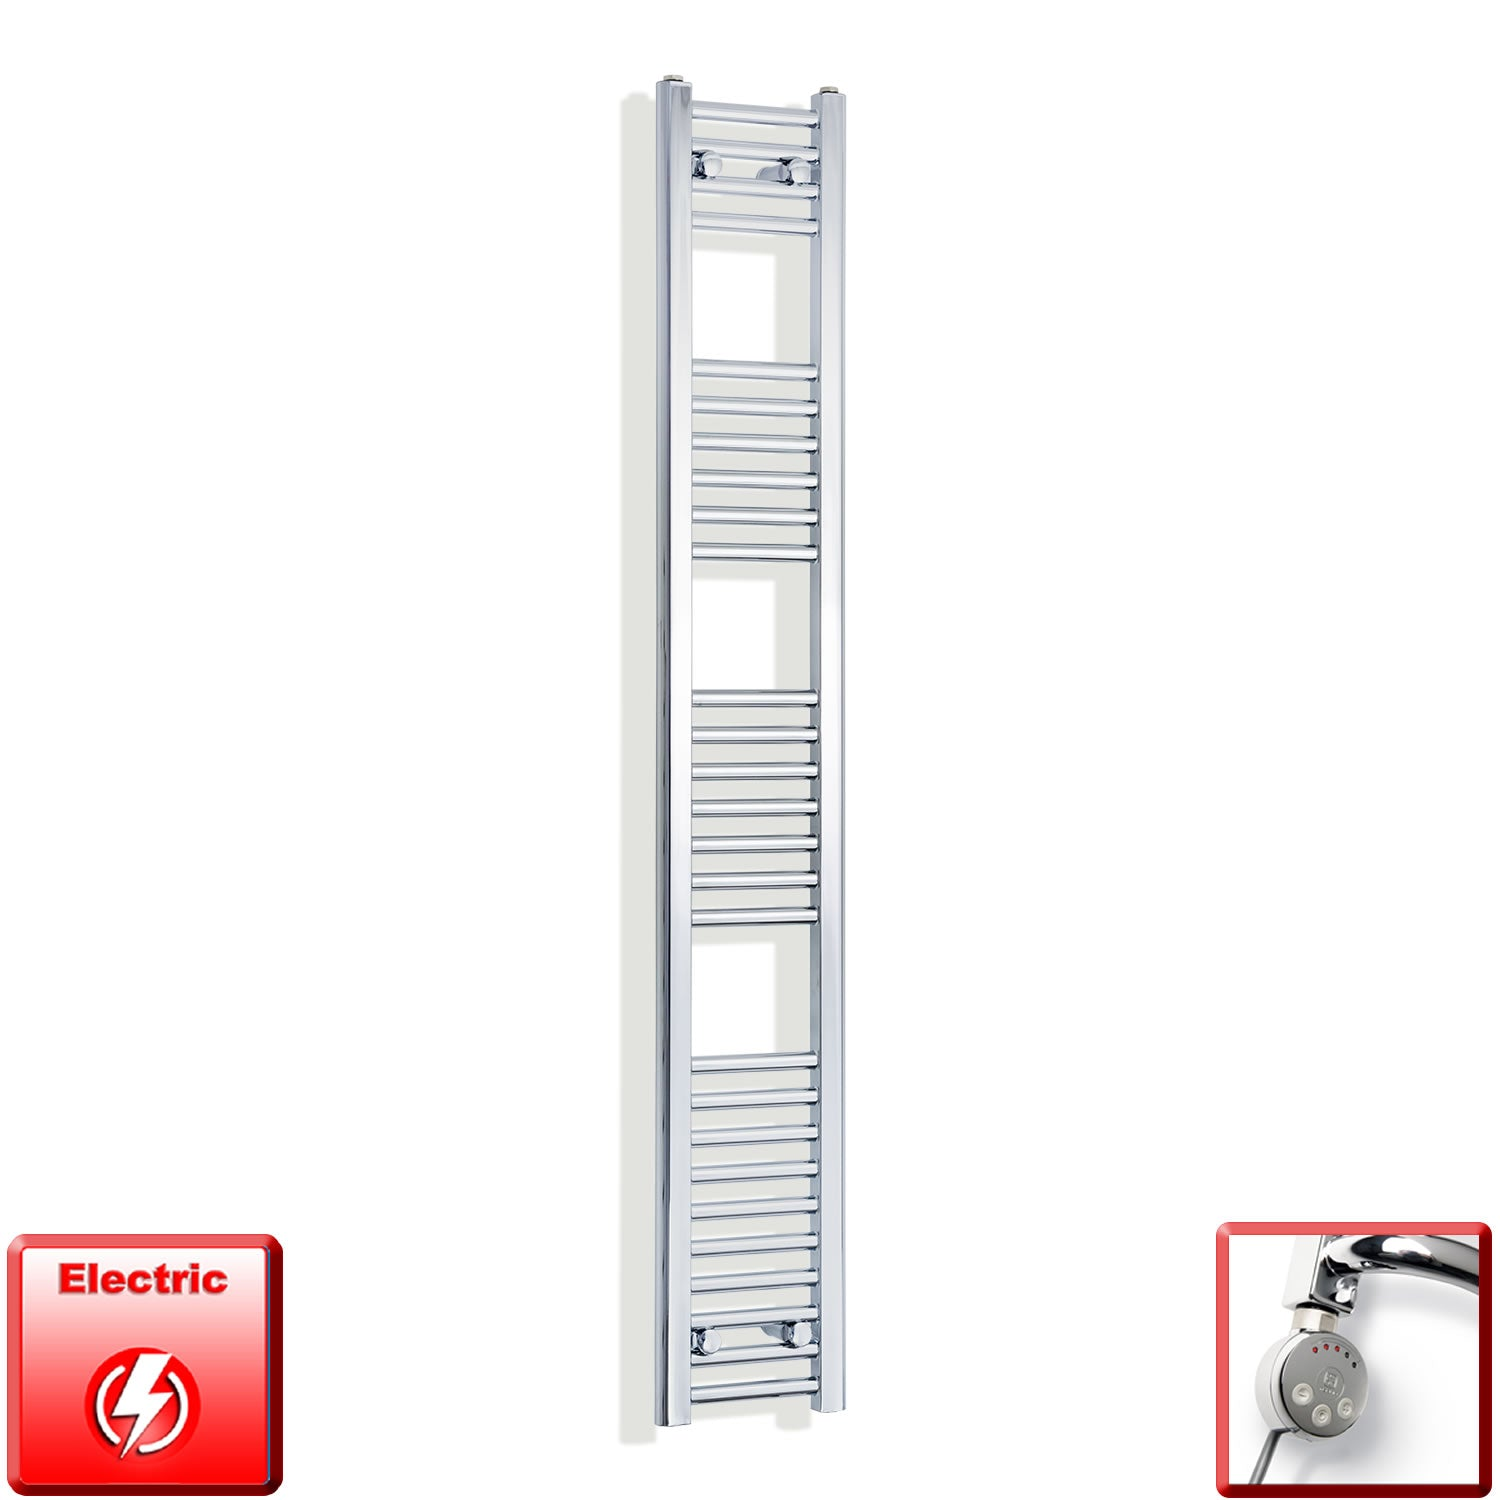 250mm Wide 1600mm High Pre-Filled Chrome Electric Towel Rail Radiator With Thermostatic MEG Element